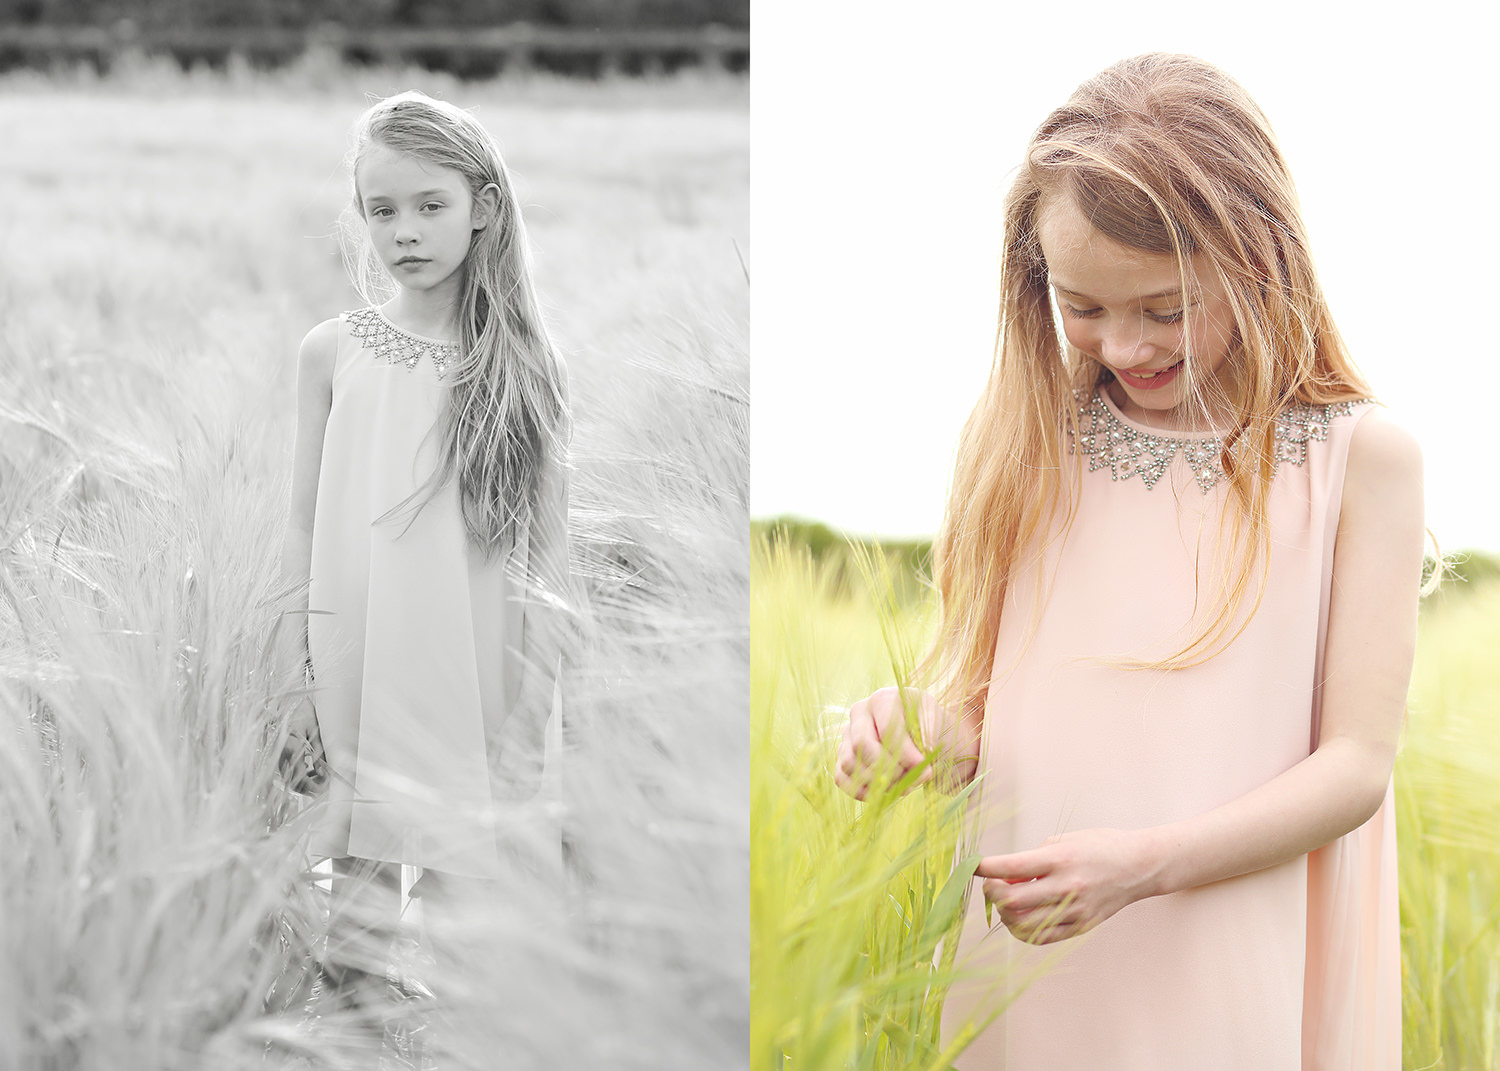 summer portraits of a girl